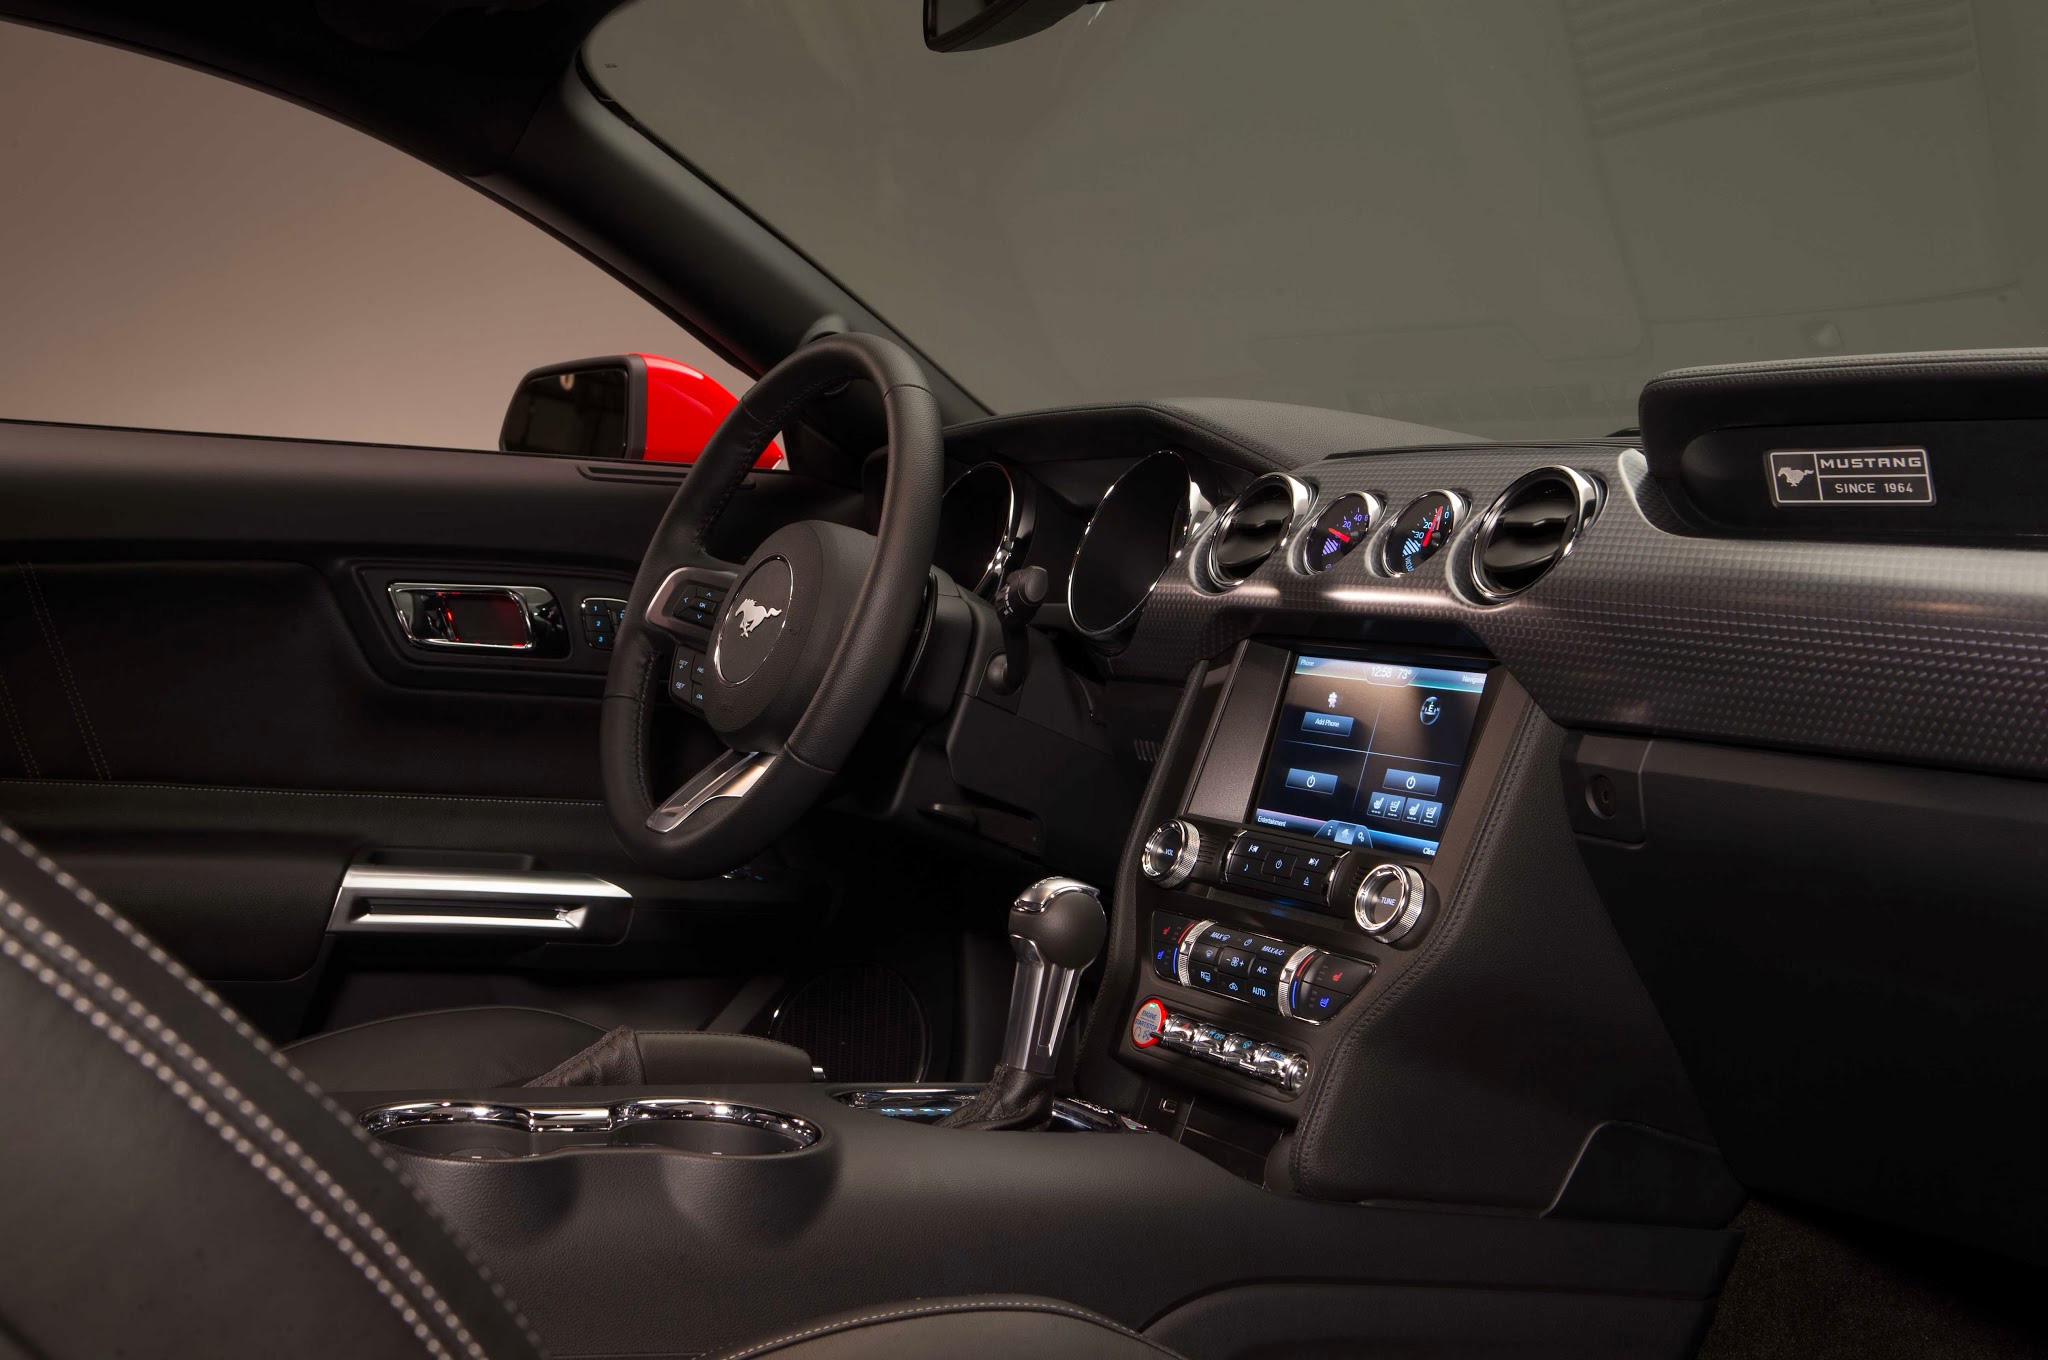 2015 ford mustang gt premium everything that matters is here ford reviews for 2015 mustang interior dimensions